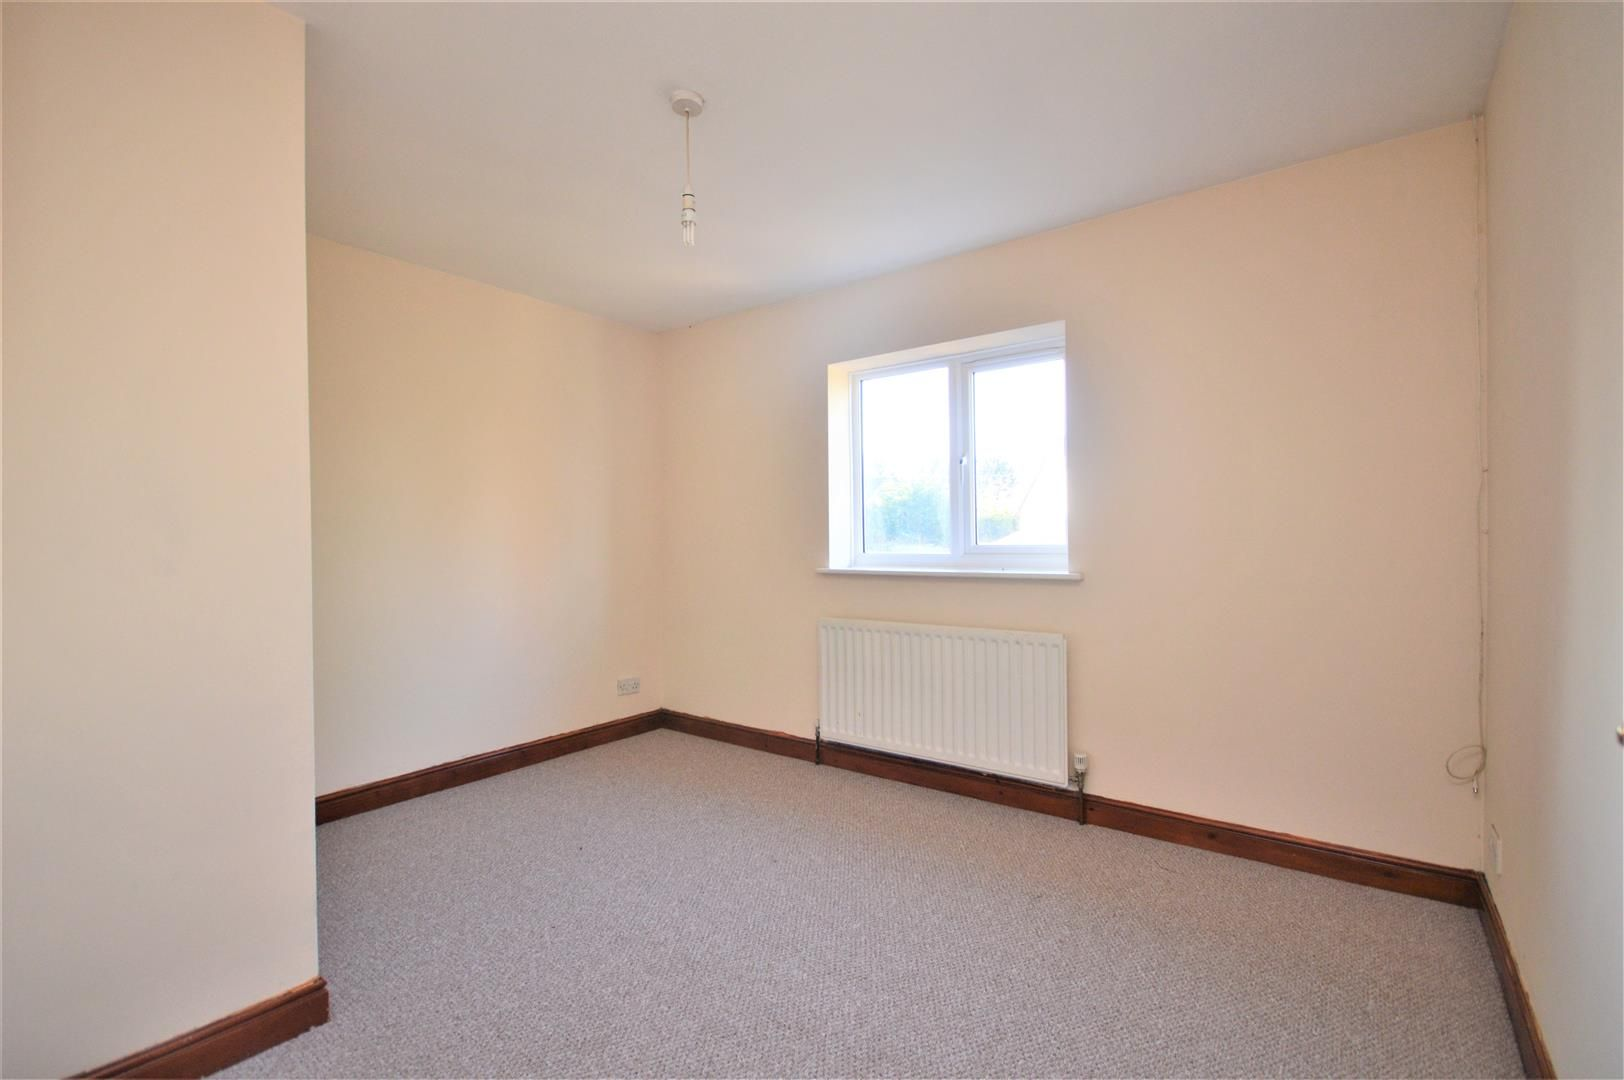 2 bed terraced for sale in Lower Bullingham  - Property Image 6